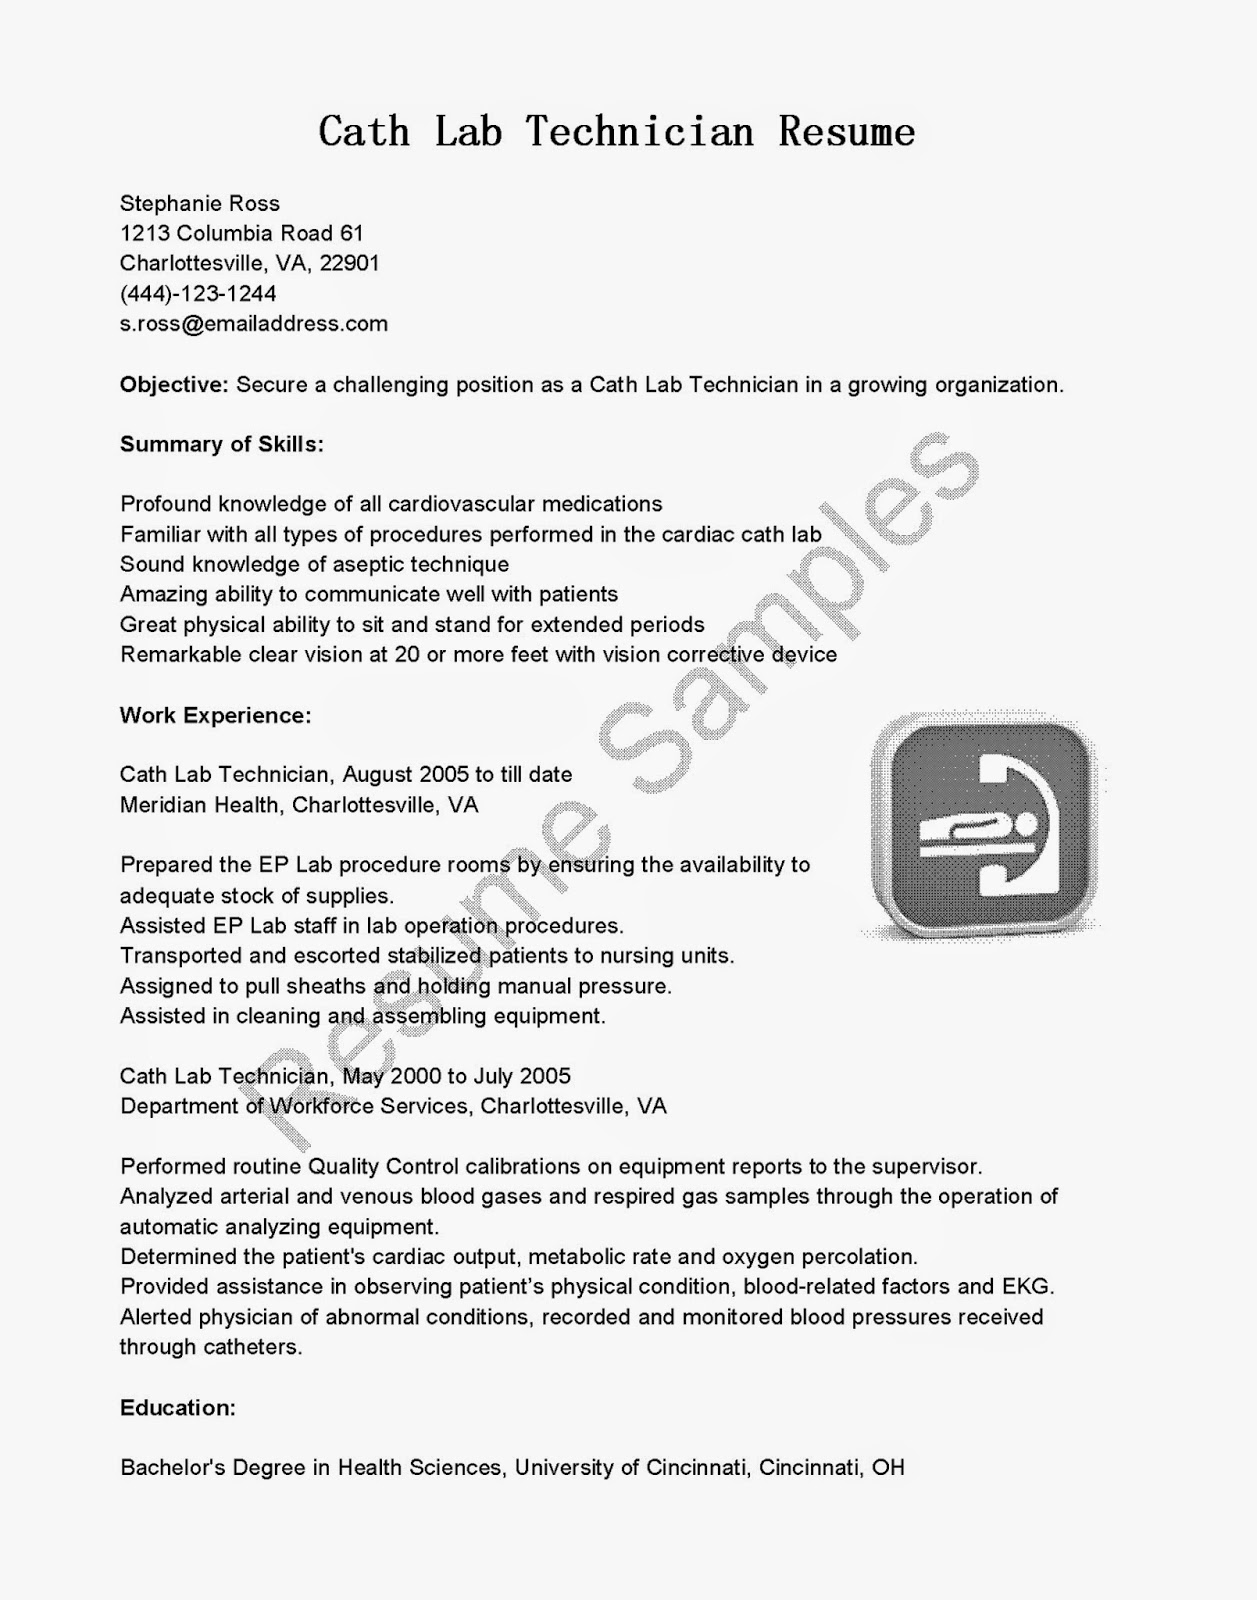 aaaaeroincus inspiring resume example resume cv with excellent